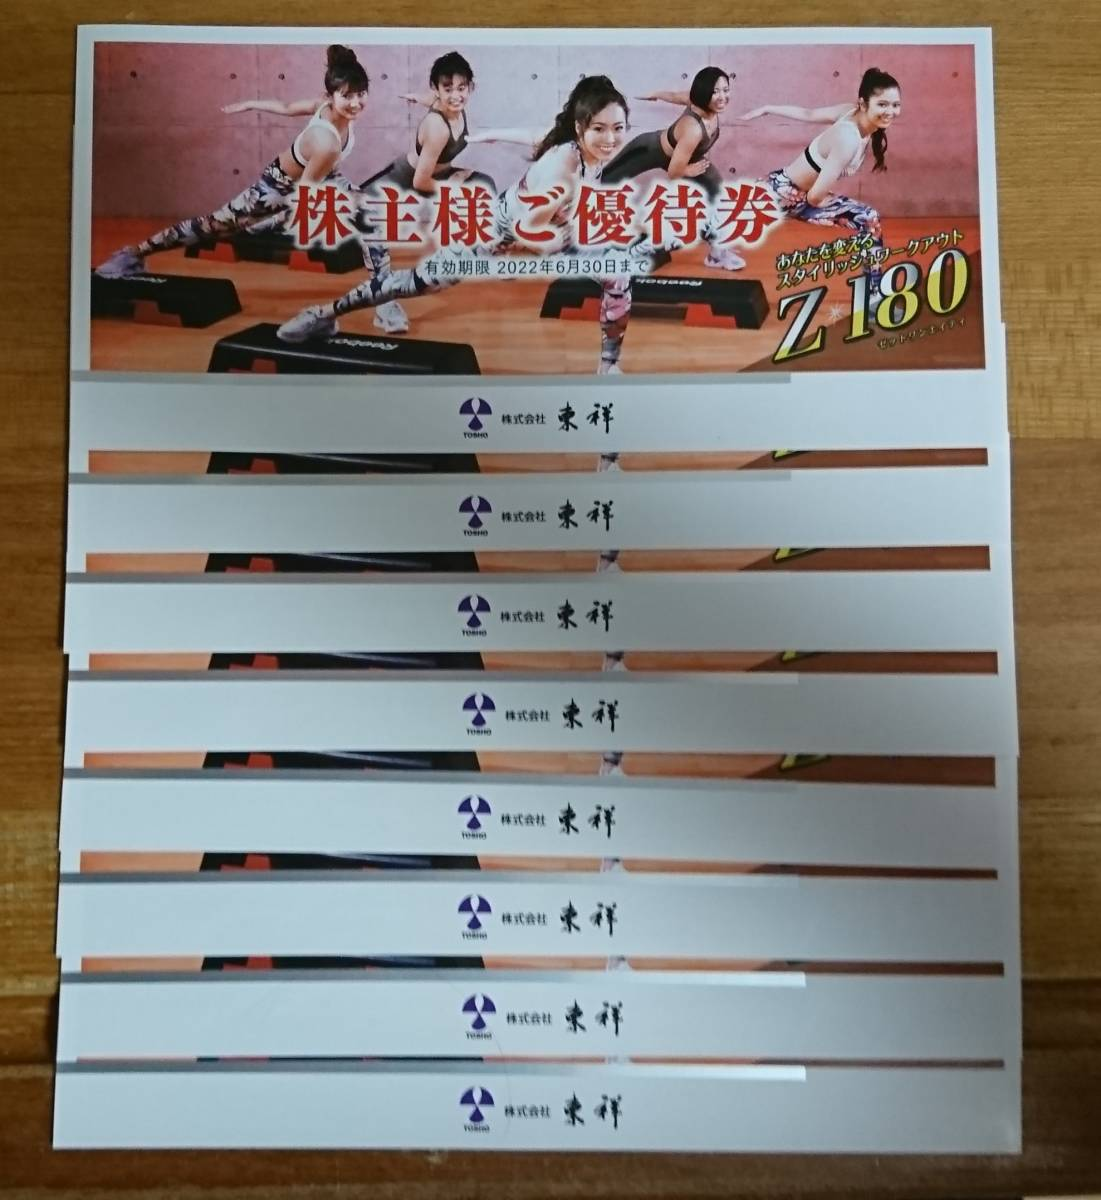 Holiday Sports Club Higashi-no-Counterplacement Ticket Set (up to 2022.6.30 Expiration Date)